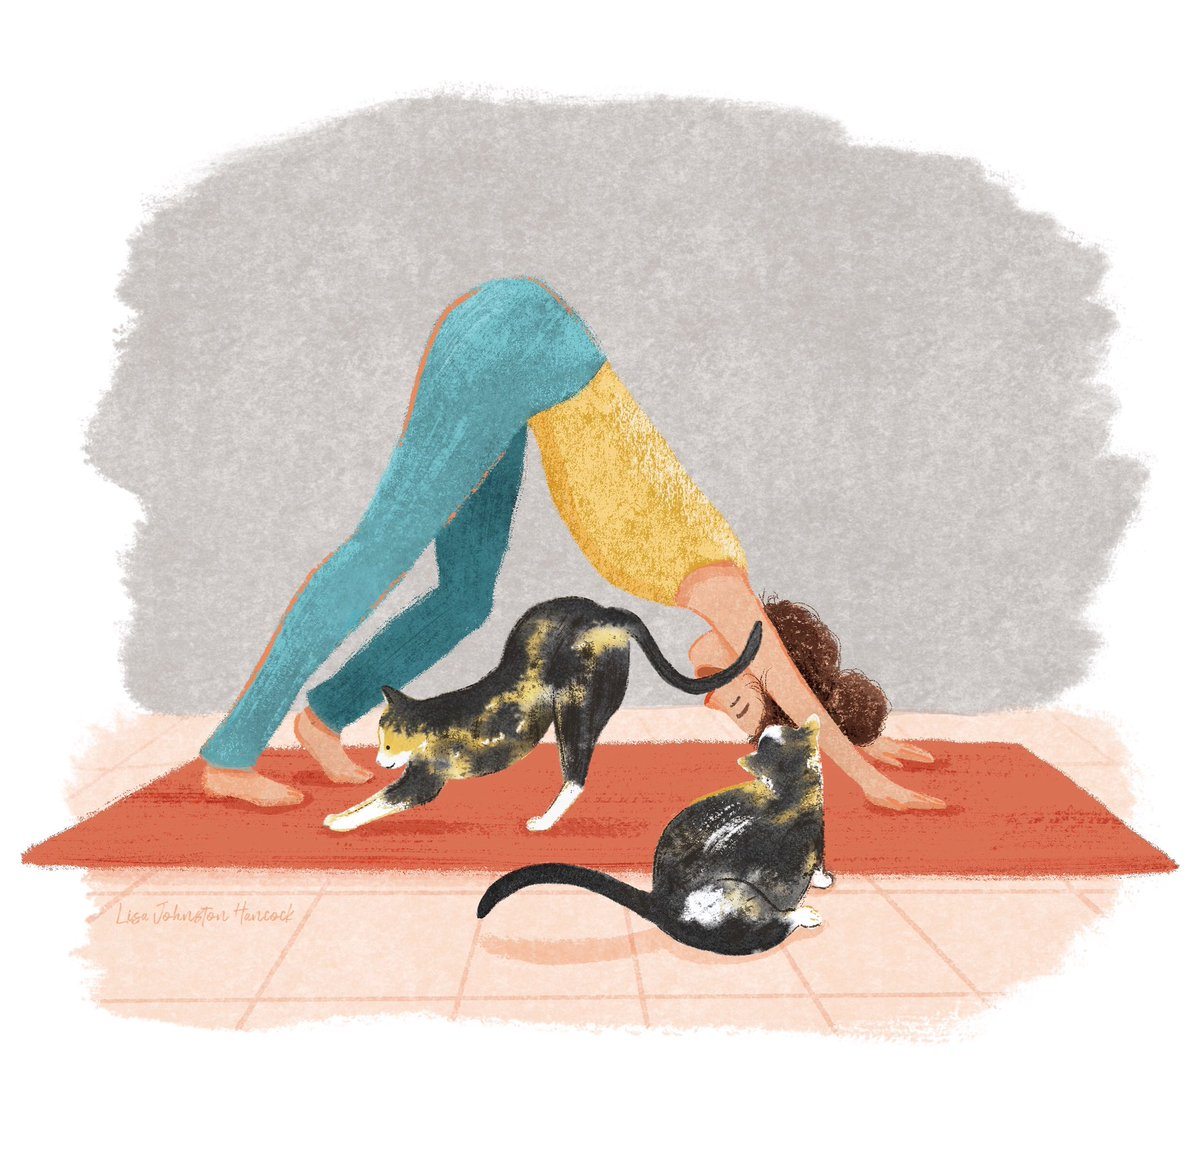 Happy Caturday! This is how I do yoga if I try doing it inside. Does anyone else have awesome yoga mates like this? 😻 #illustration #caturday #drawing #womenwhodraw #yogaillustration #instaartwork